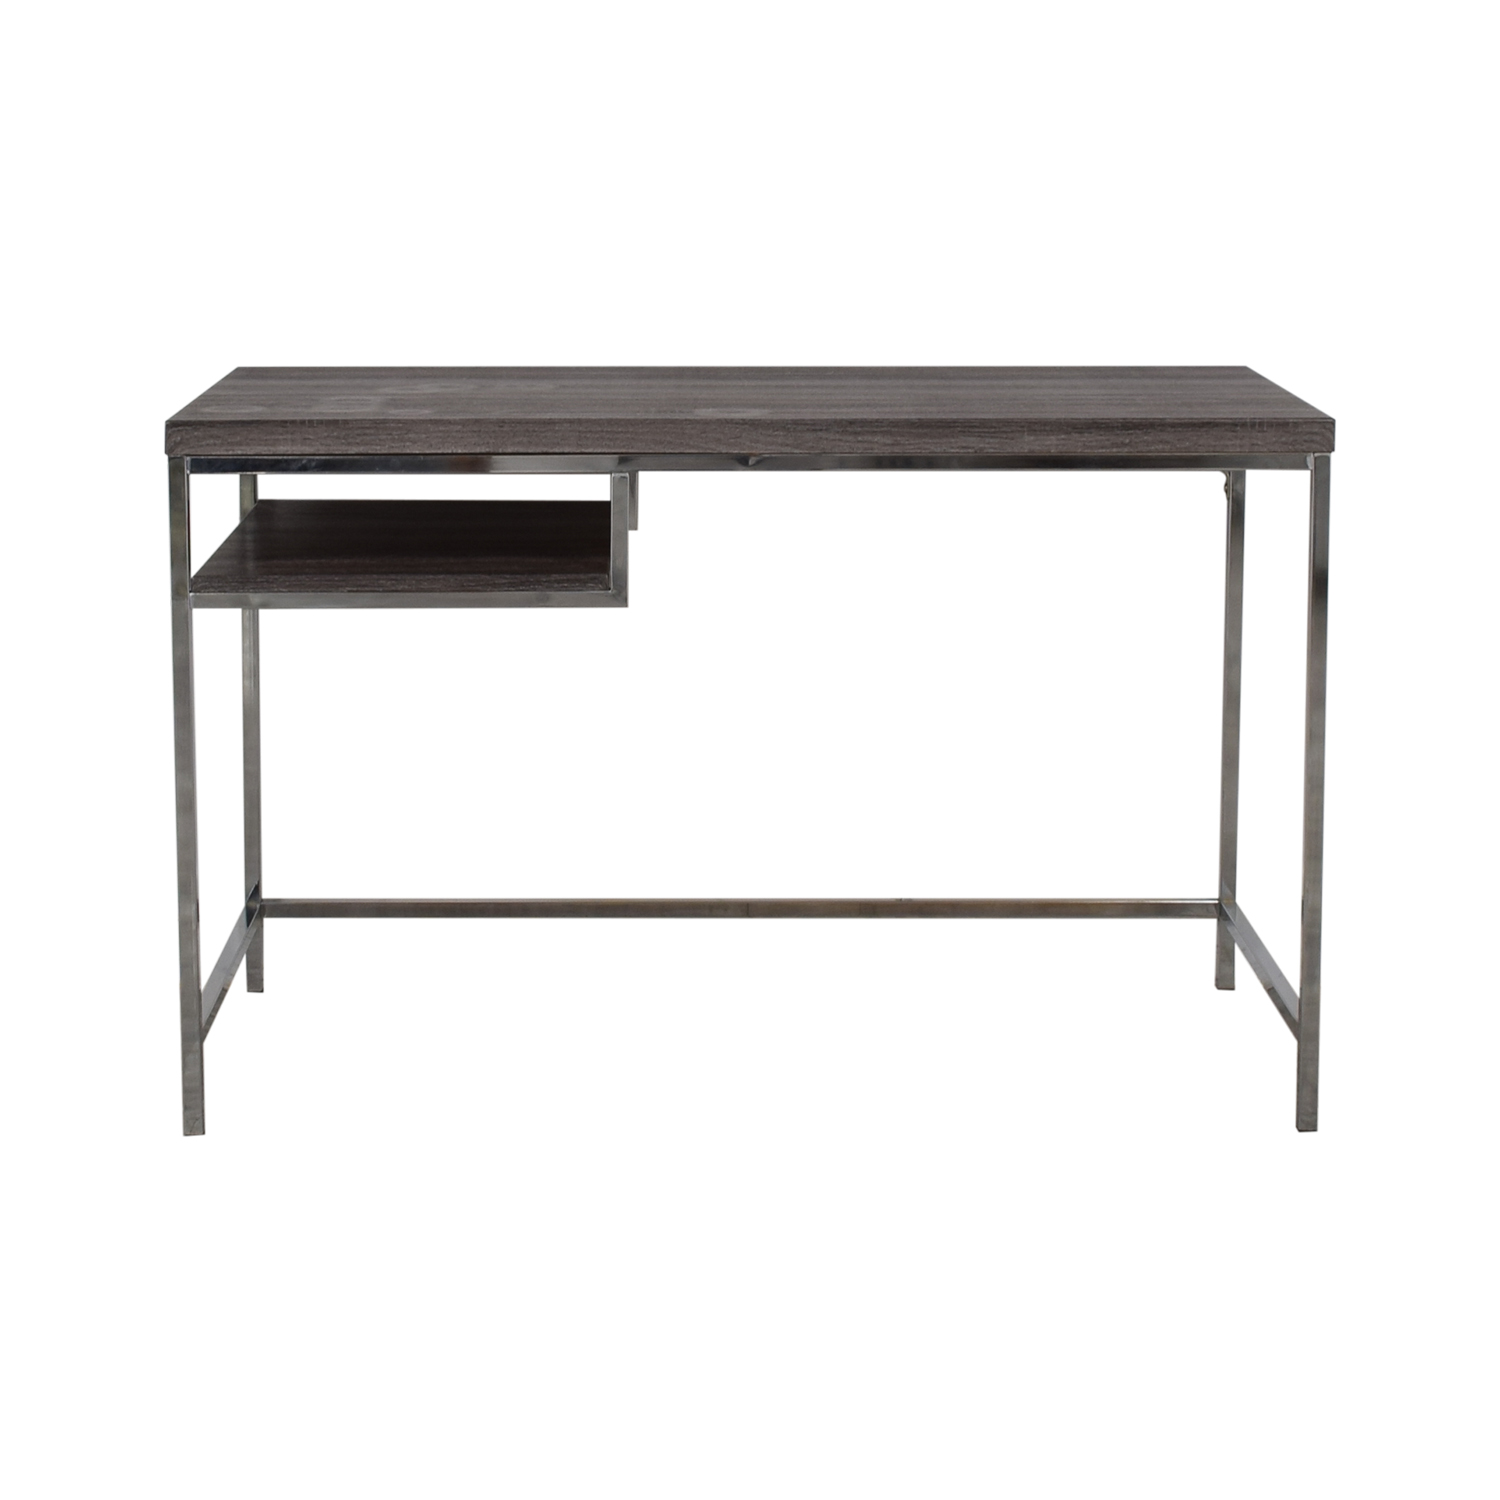 Attirant 87% OFF   Wayfair Wayfair Mercury Row Behler Writing Desk / Tables